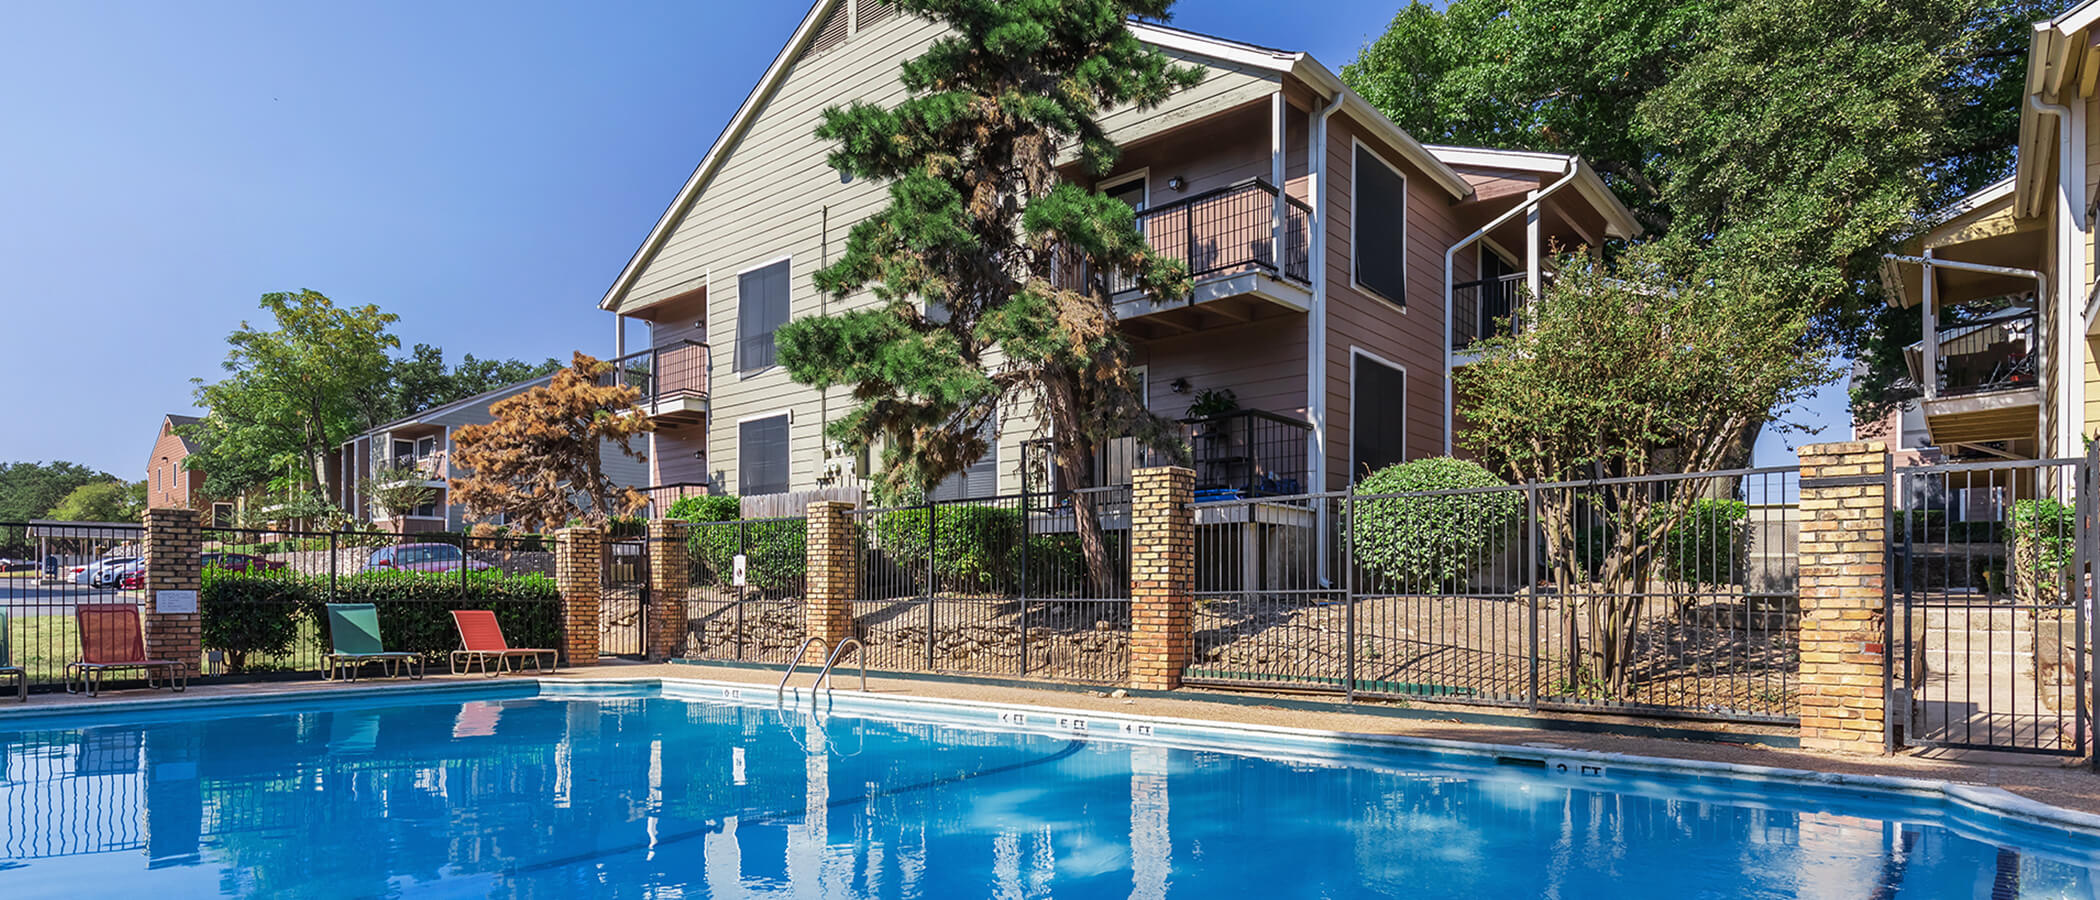 Highland Cove Apartments slideshow image 1